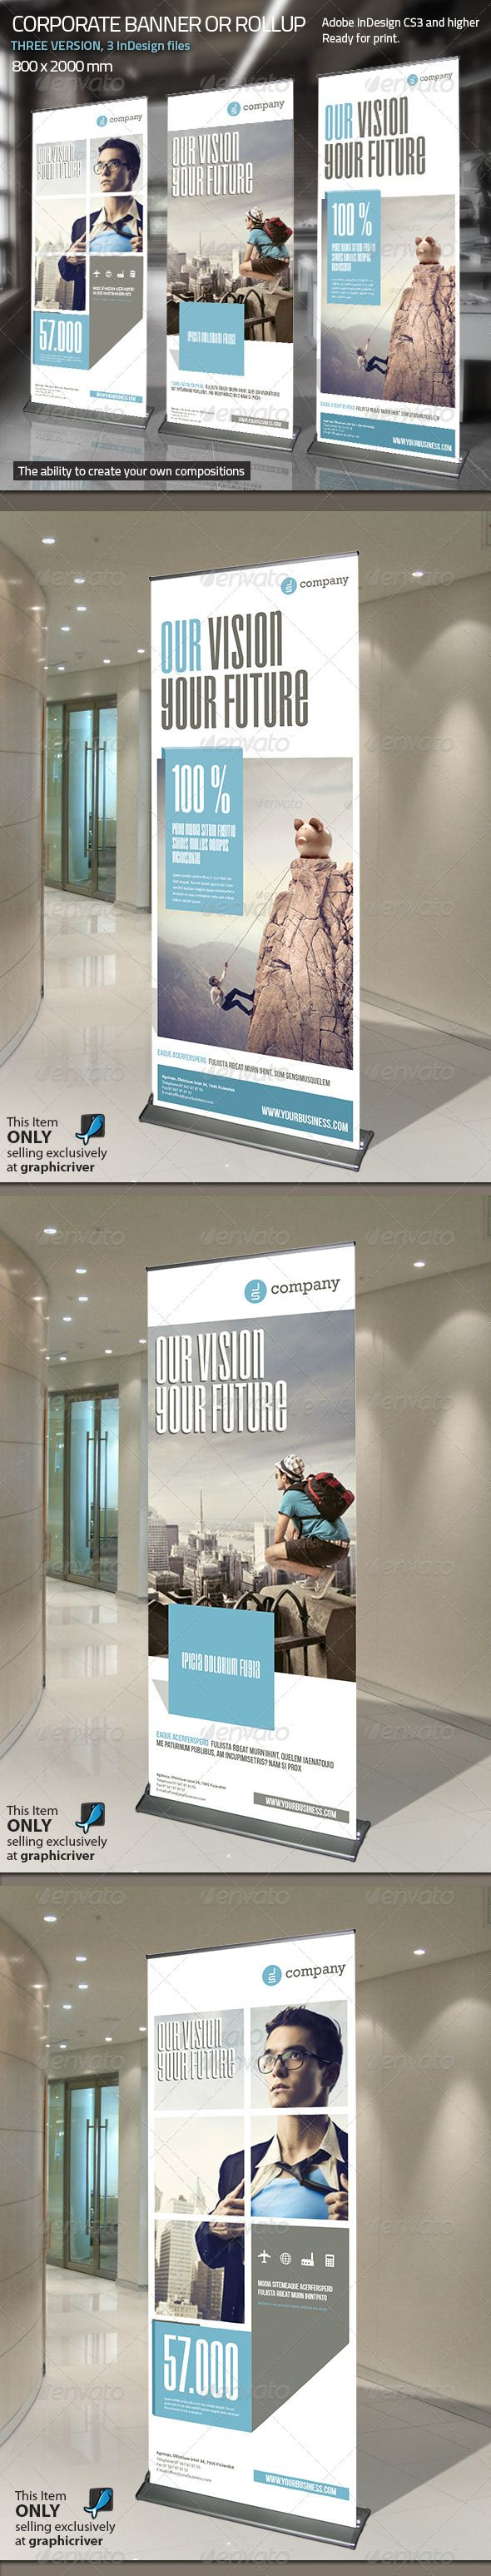 Corporate Banner or Rollup Vol 3 - Signage Print Templates